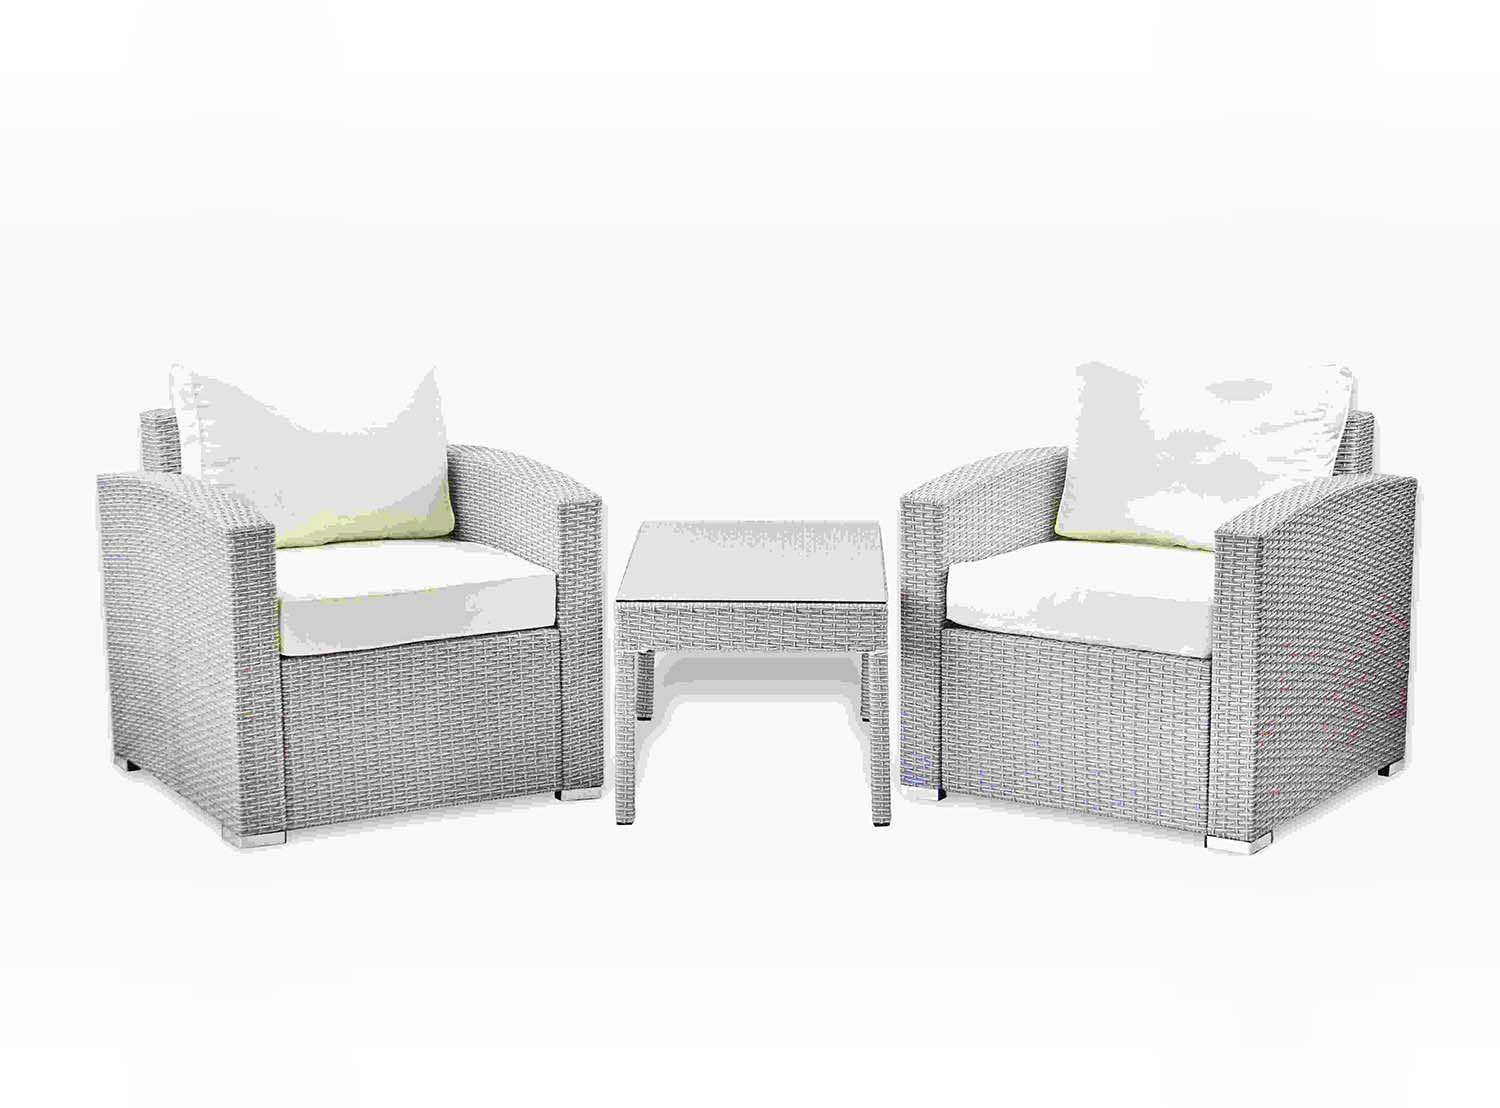 Lounge Set Rattan Patio 3 Pc Lounge Set Coffee Table Lounge Chairs Includes Square Table